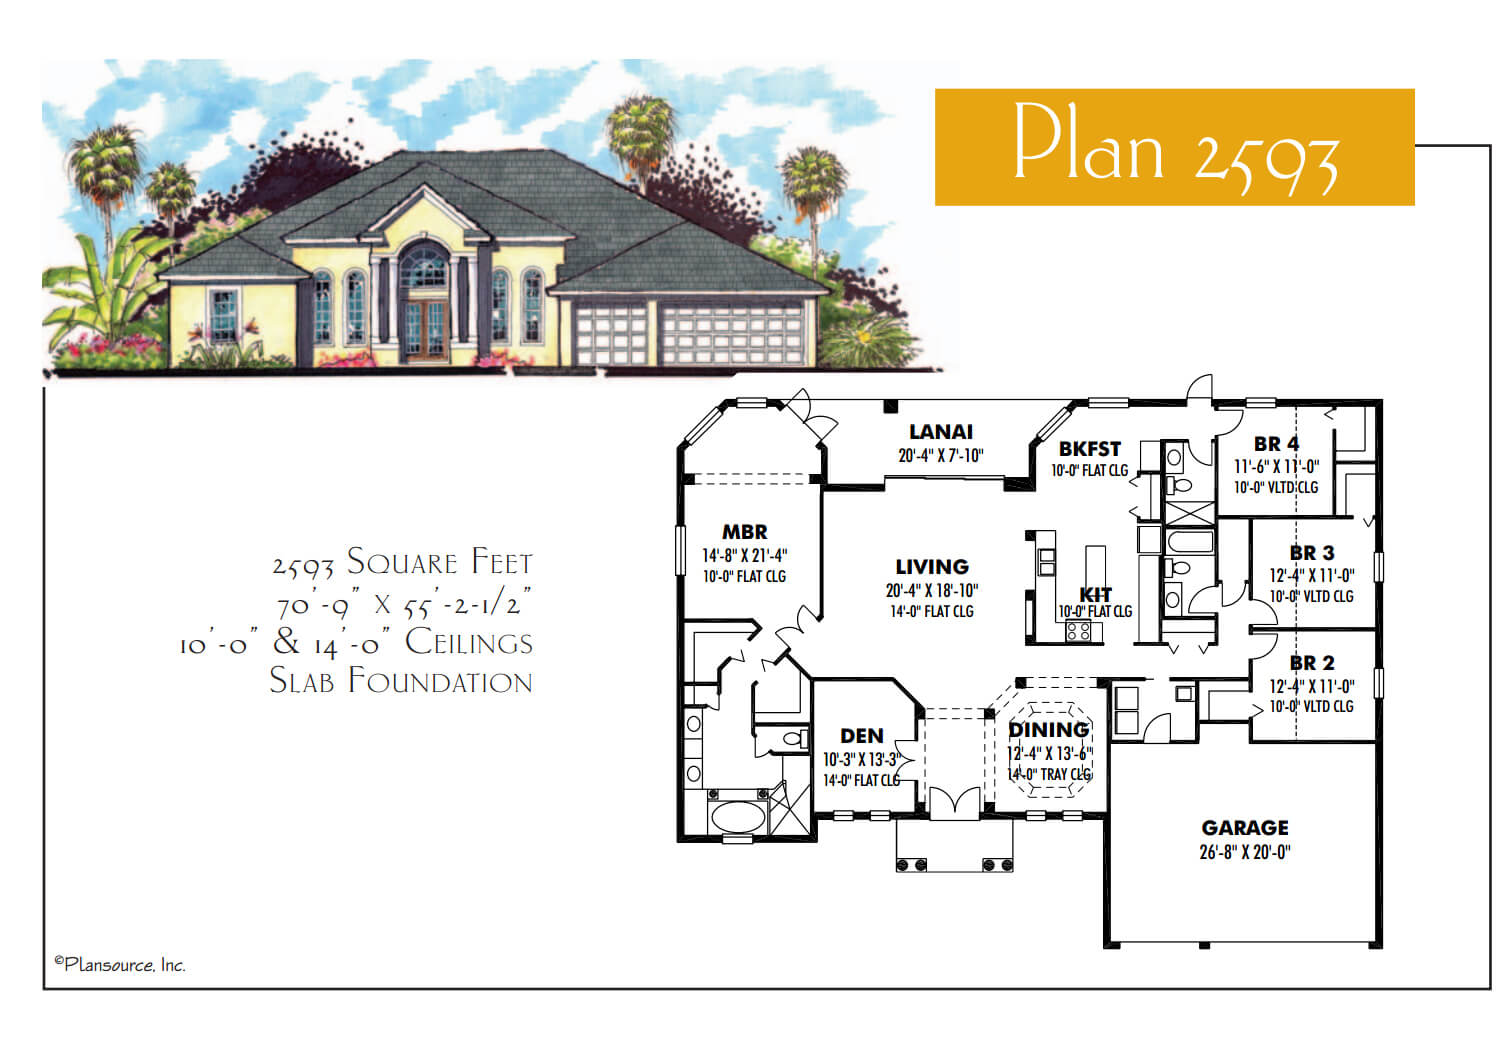 Floor Plans,2,501 SQ FT TO 3,000 SQ FT,1057